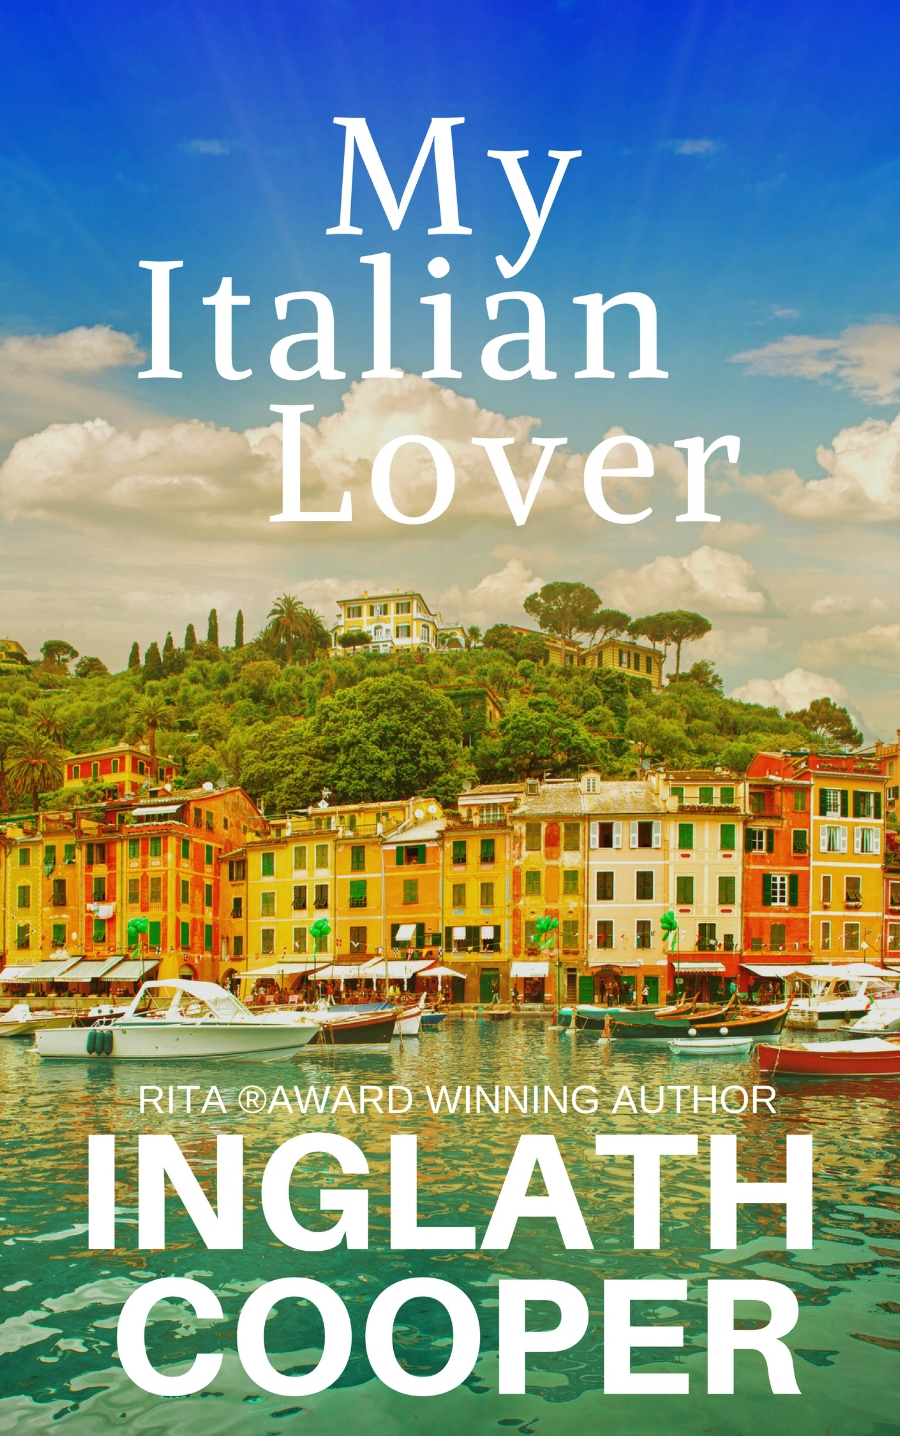 Does the heart ever really forget what it once knew?Esme Westbrook travels to Portofino, Italy for an encounter that will determine the outcome of the rest of her life. When the man of her dreams arrives at the Hotel Splendido, will she find the courage to step out and take a chance on happiness? -